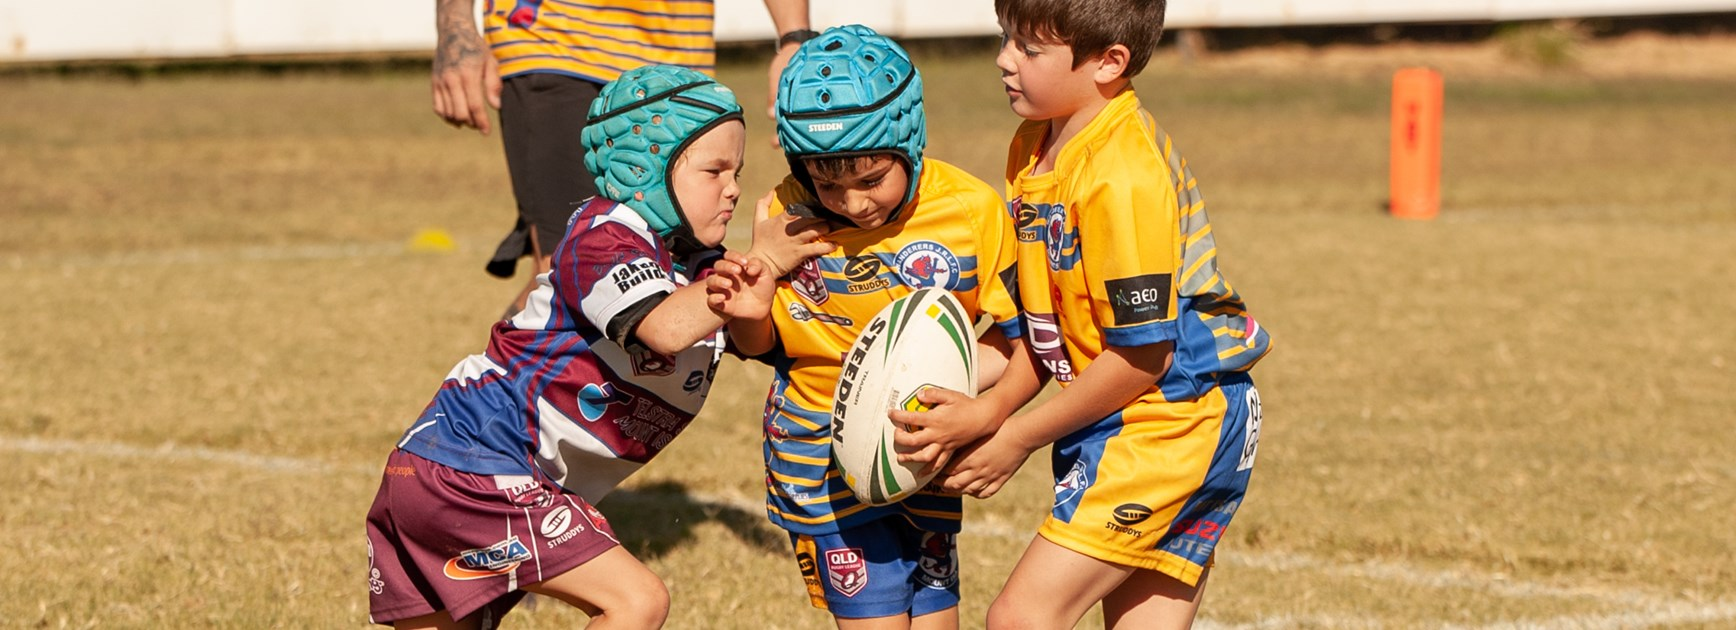 QRL approves suppliers to support community rugby league